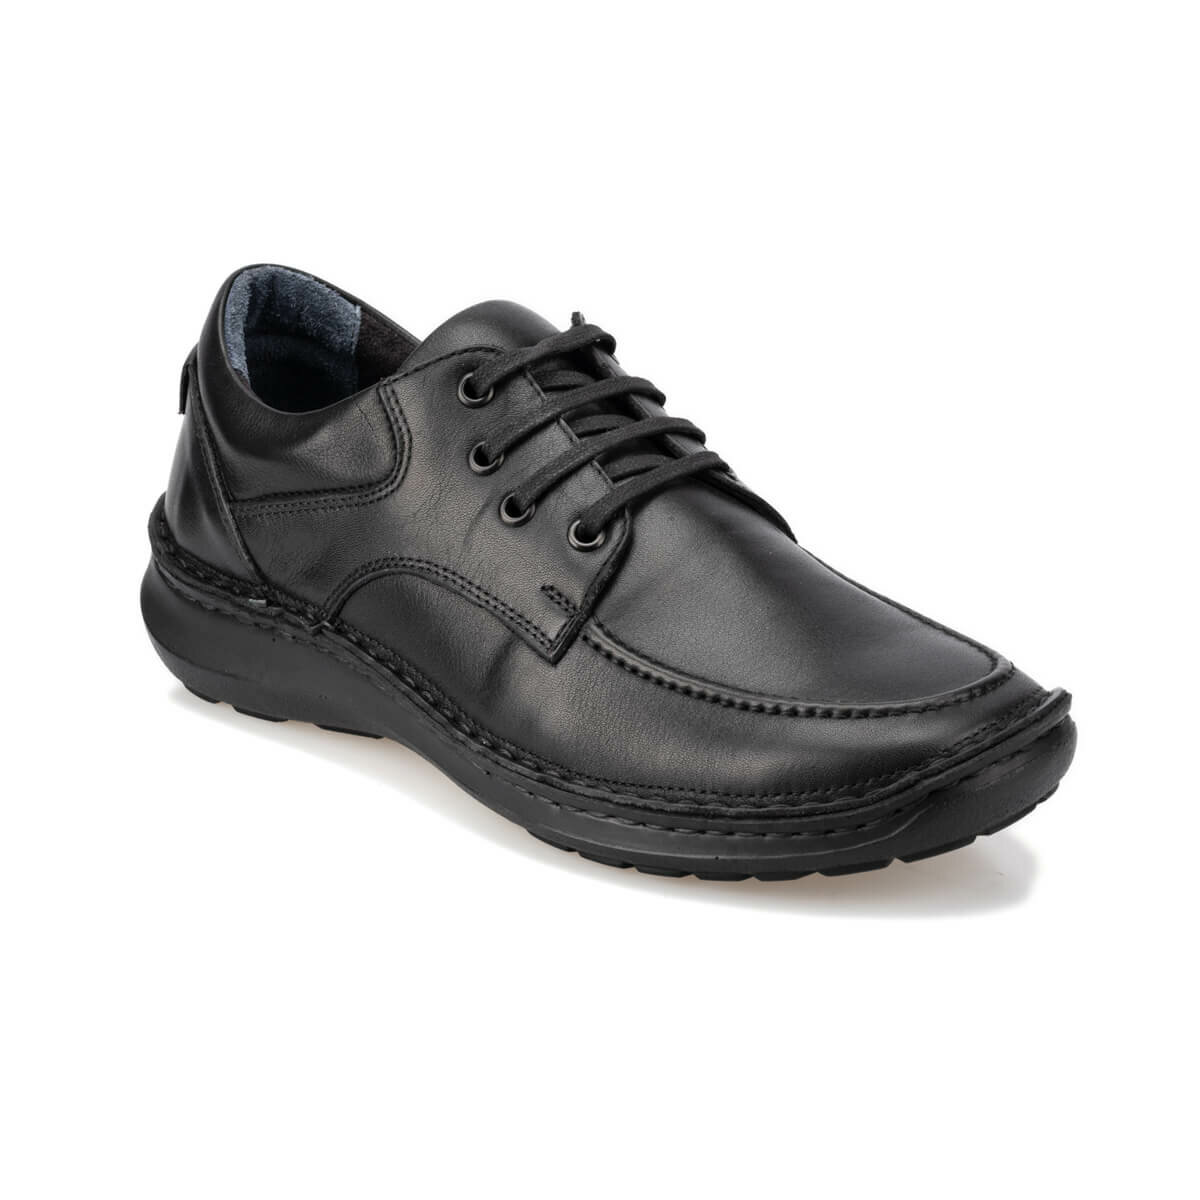 FLO 92.100900.M Black Male Shoes Polaris 5 Point